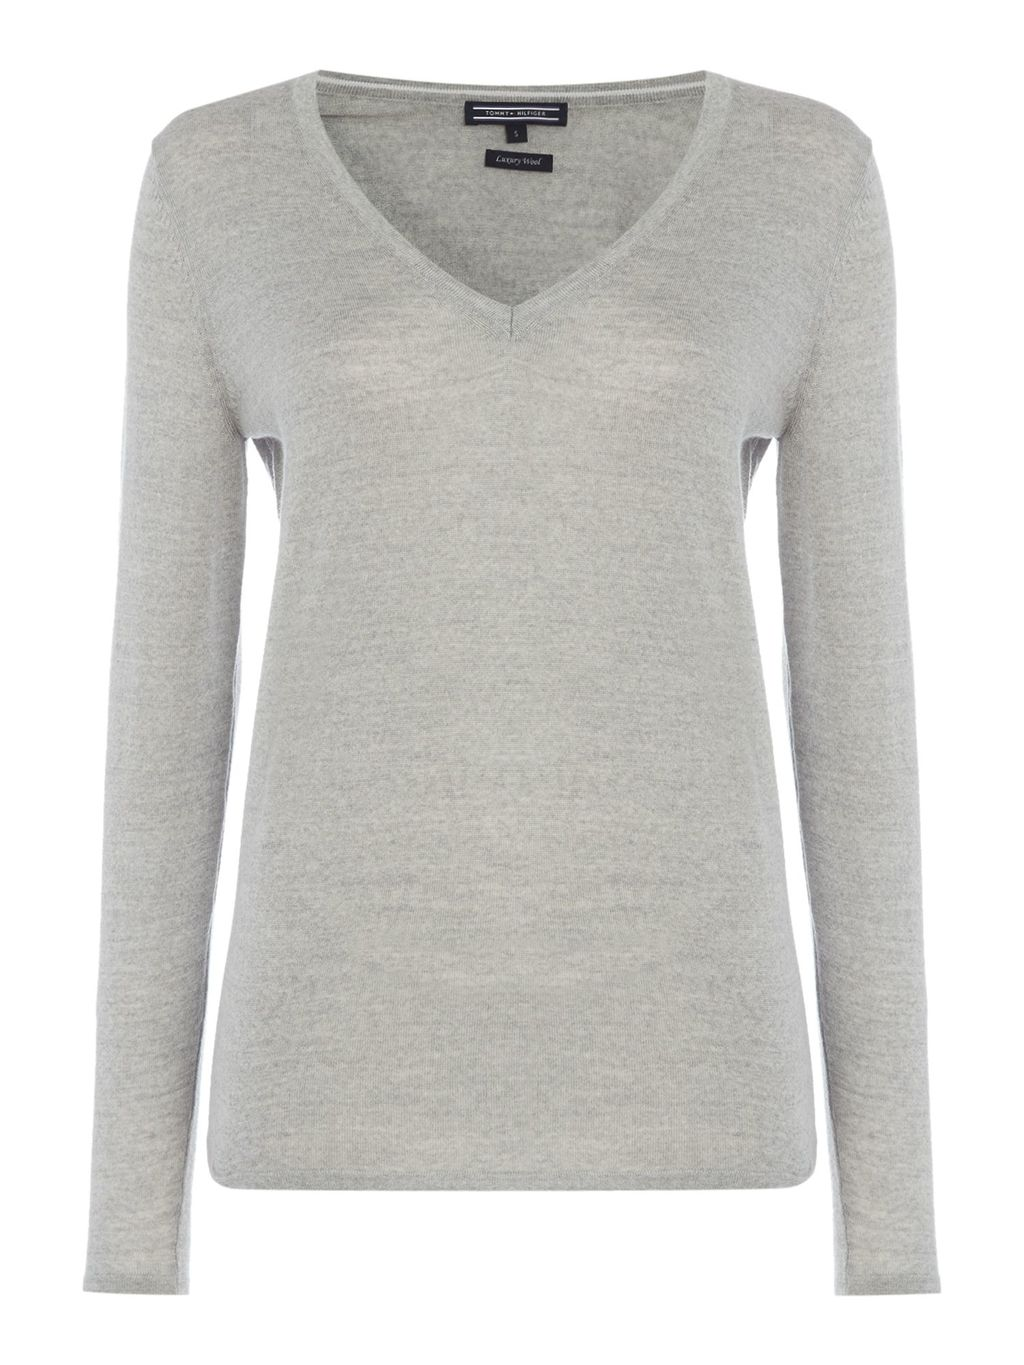 Guvera V Neck Sweater, Light Grey - neckline: v-neck; pattern: plain; style: standard; predominant colour: light grey; occasions: casual, work, creative work; length: standard; fibres: fur - 100%; fit: standard fit; sleeve length: long sleeve; sleeve style: standard; texture group: knits/crochet; pattern type: knitted - fine stitch; season: s/s 2016; wardrobe: basic